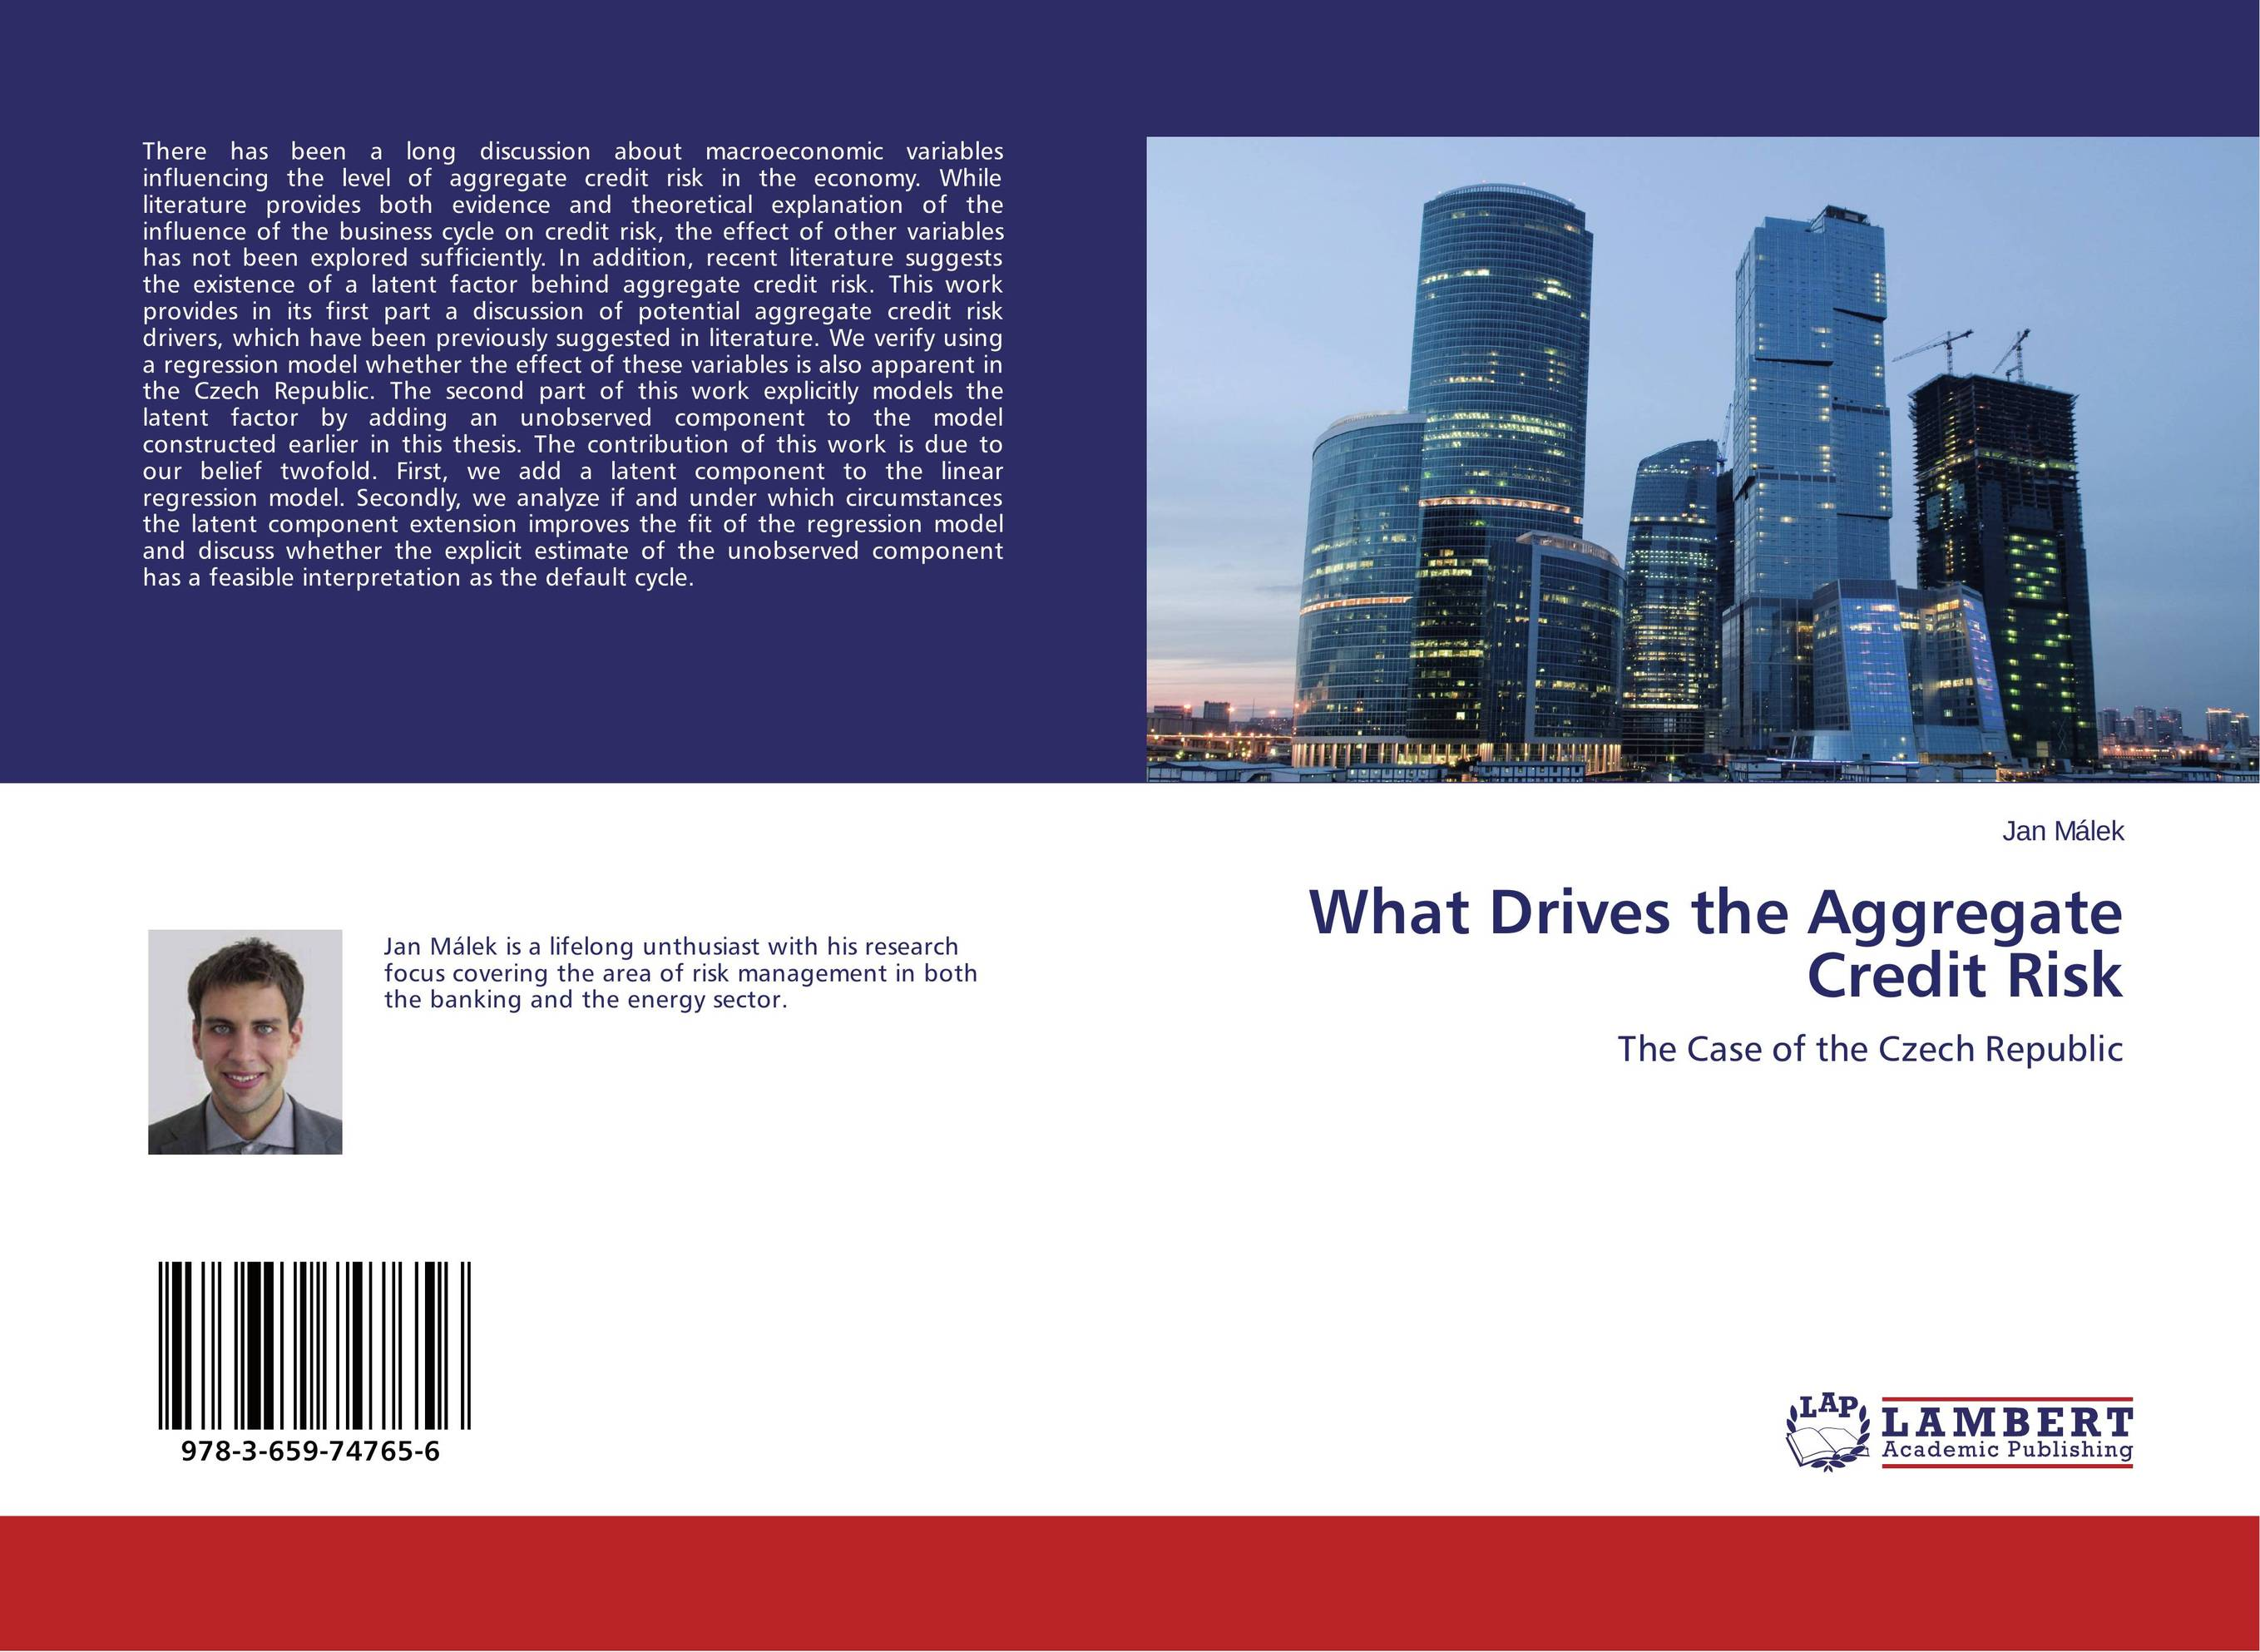 What Drives the Aggregate Credit Risk